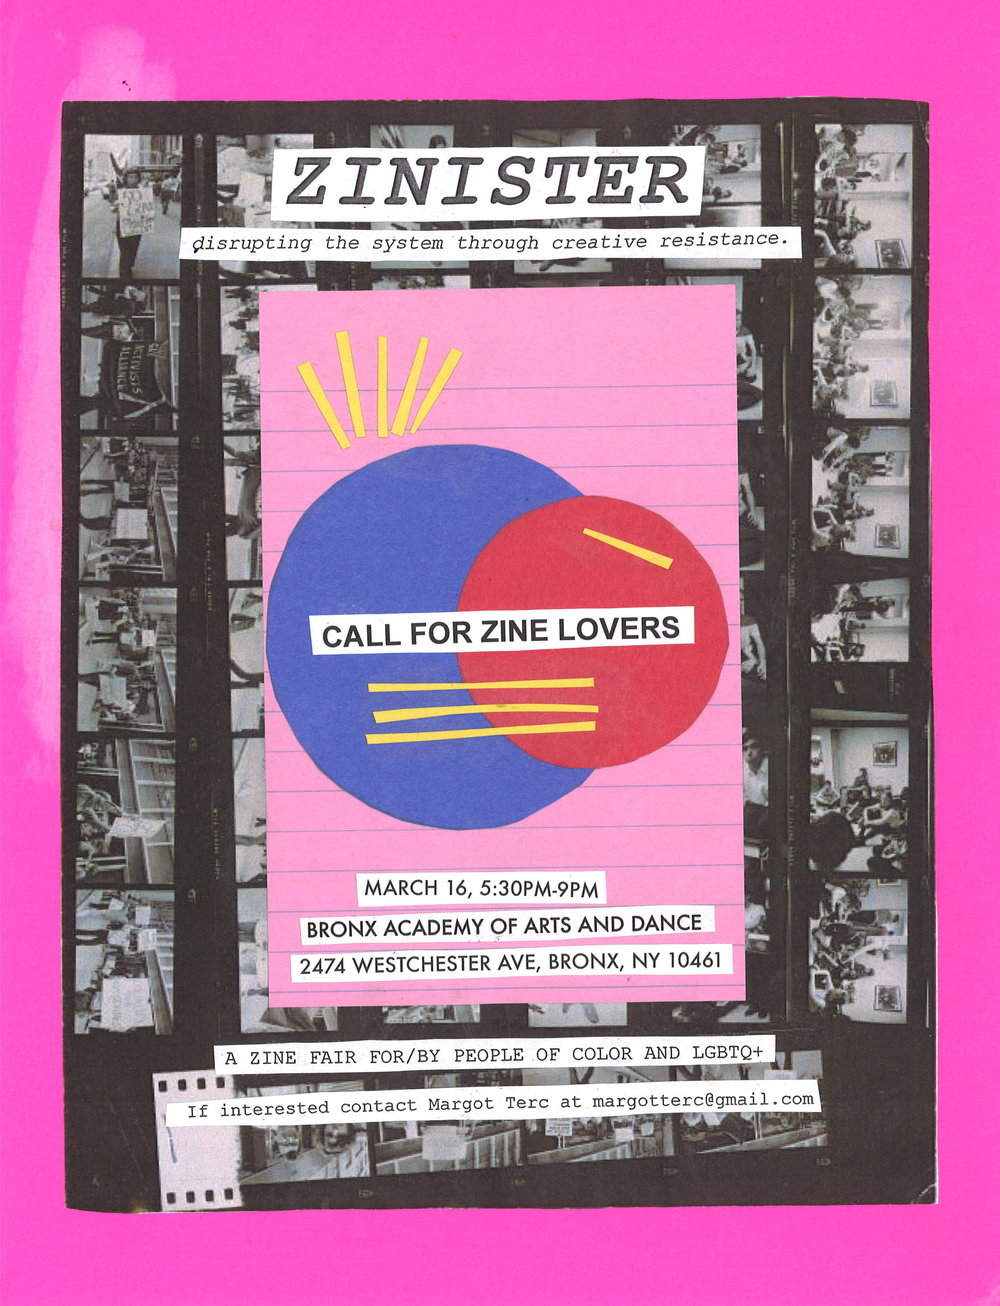 Zinister Zine Fest - May 16, 2017 - 6pm || BAAD! BronxRole: OrganizerWe're excited to present ZINISTER, a zine fair for/by people of color and lgbtq+ folks. The fair is part of BAAD! Ass Women 2017 festival, and it is a call for our local artists and cultural workers to disrupt the system through creative resistance.